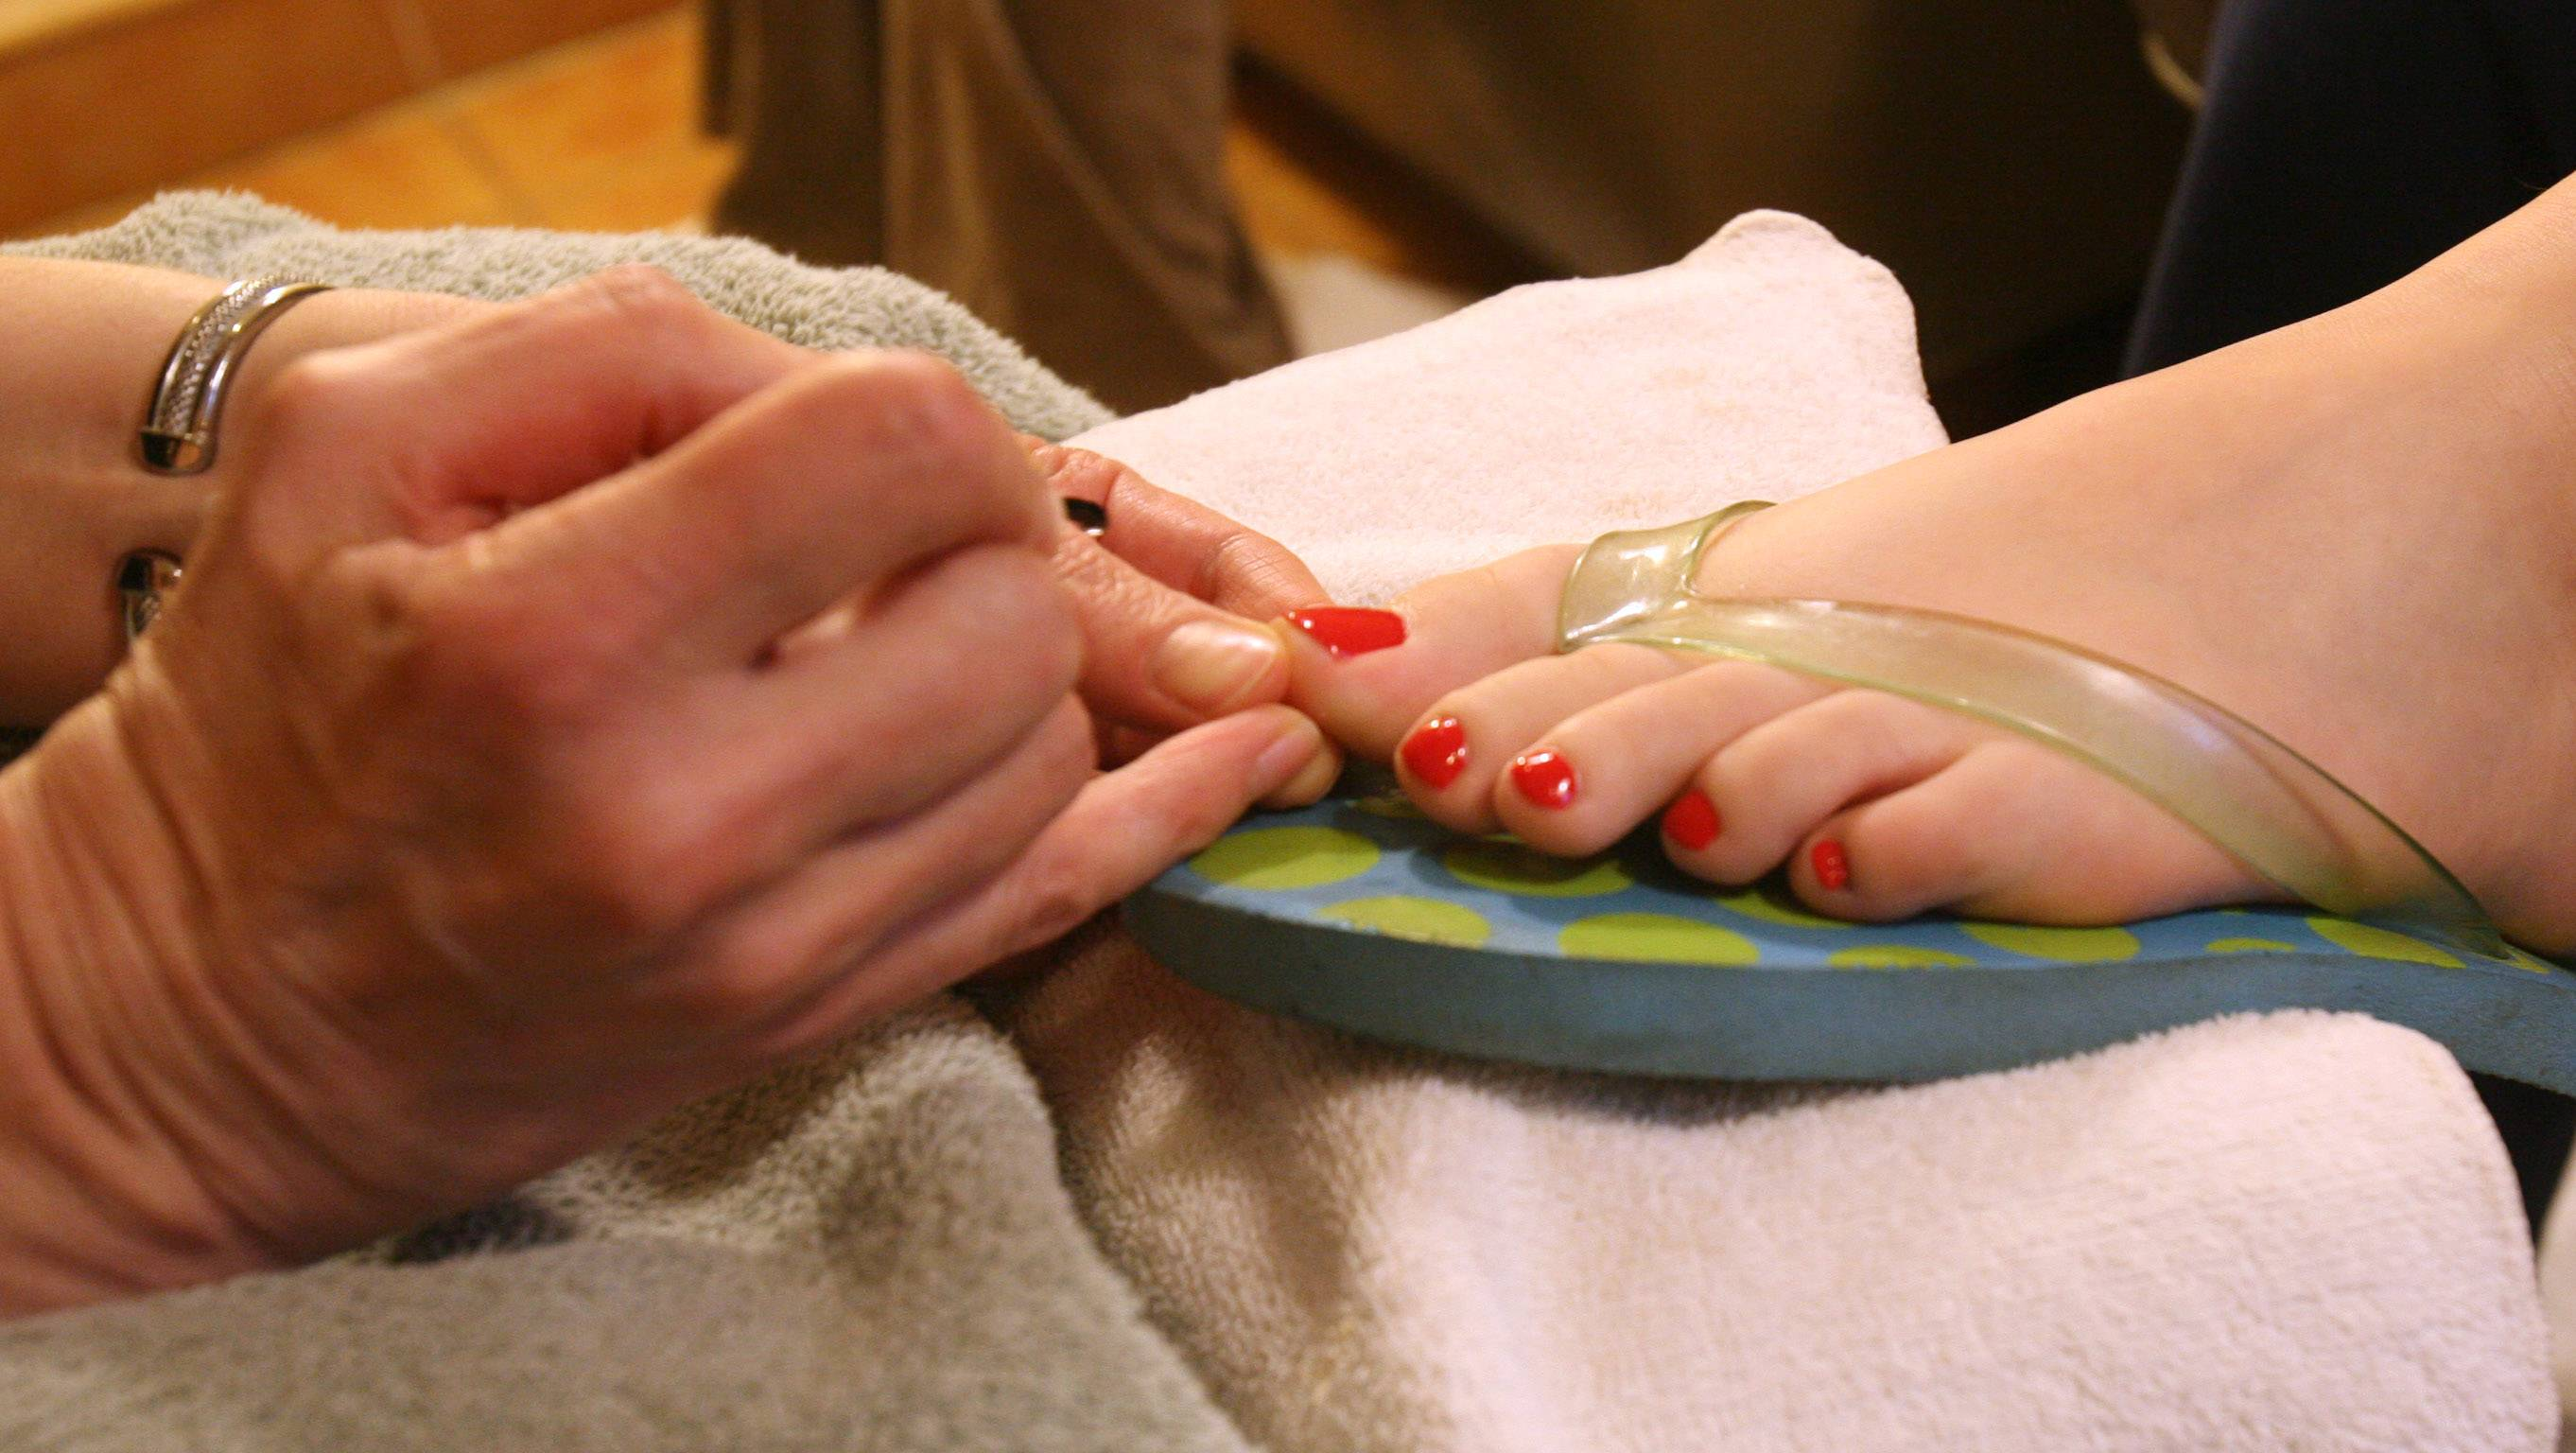 Getting a pedicure for colorful toes can pose some health risks, so doctors warn to be careful.